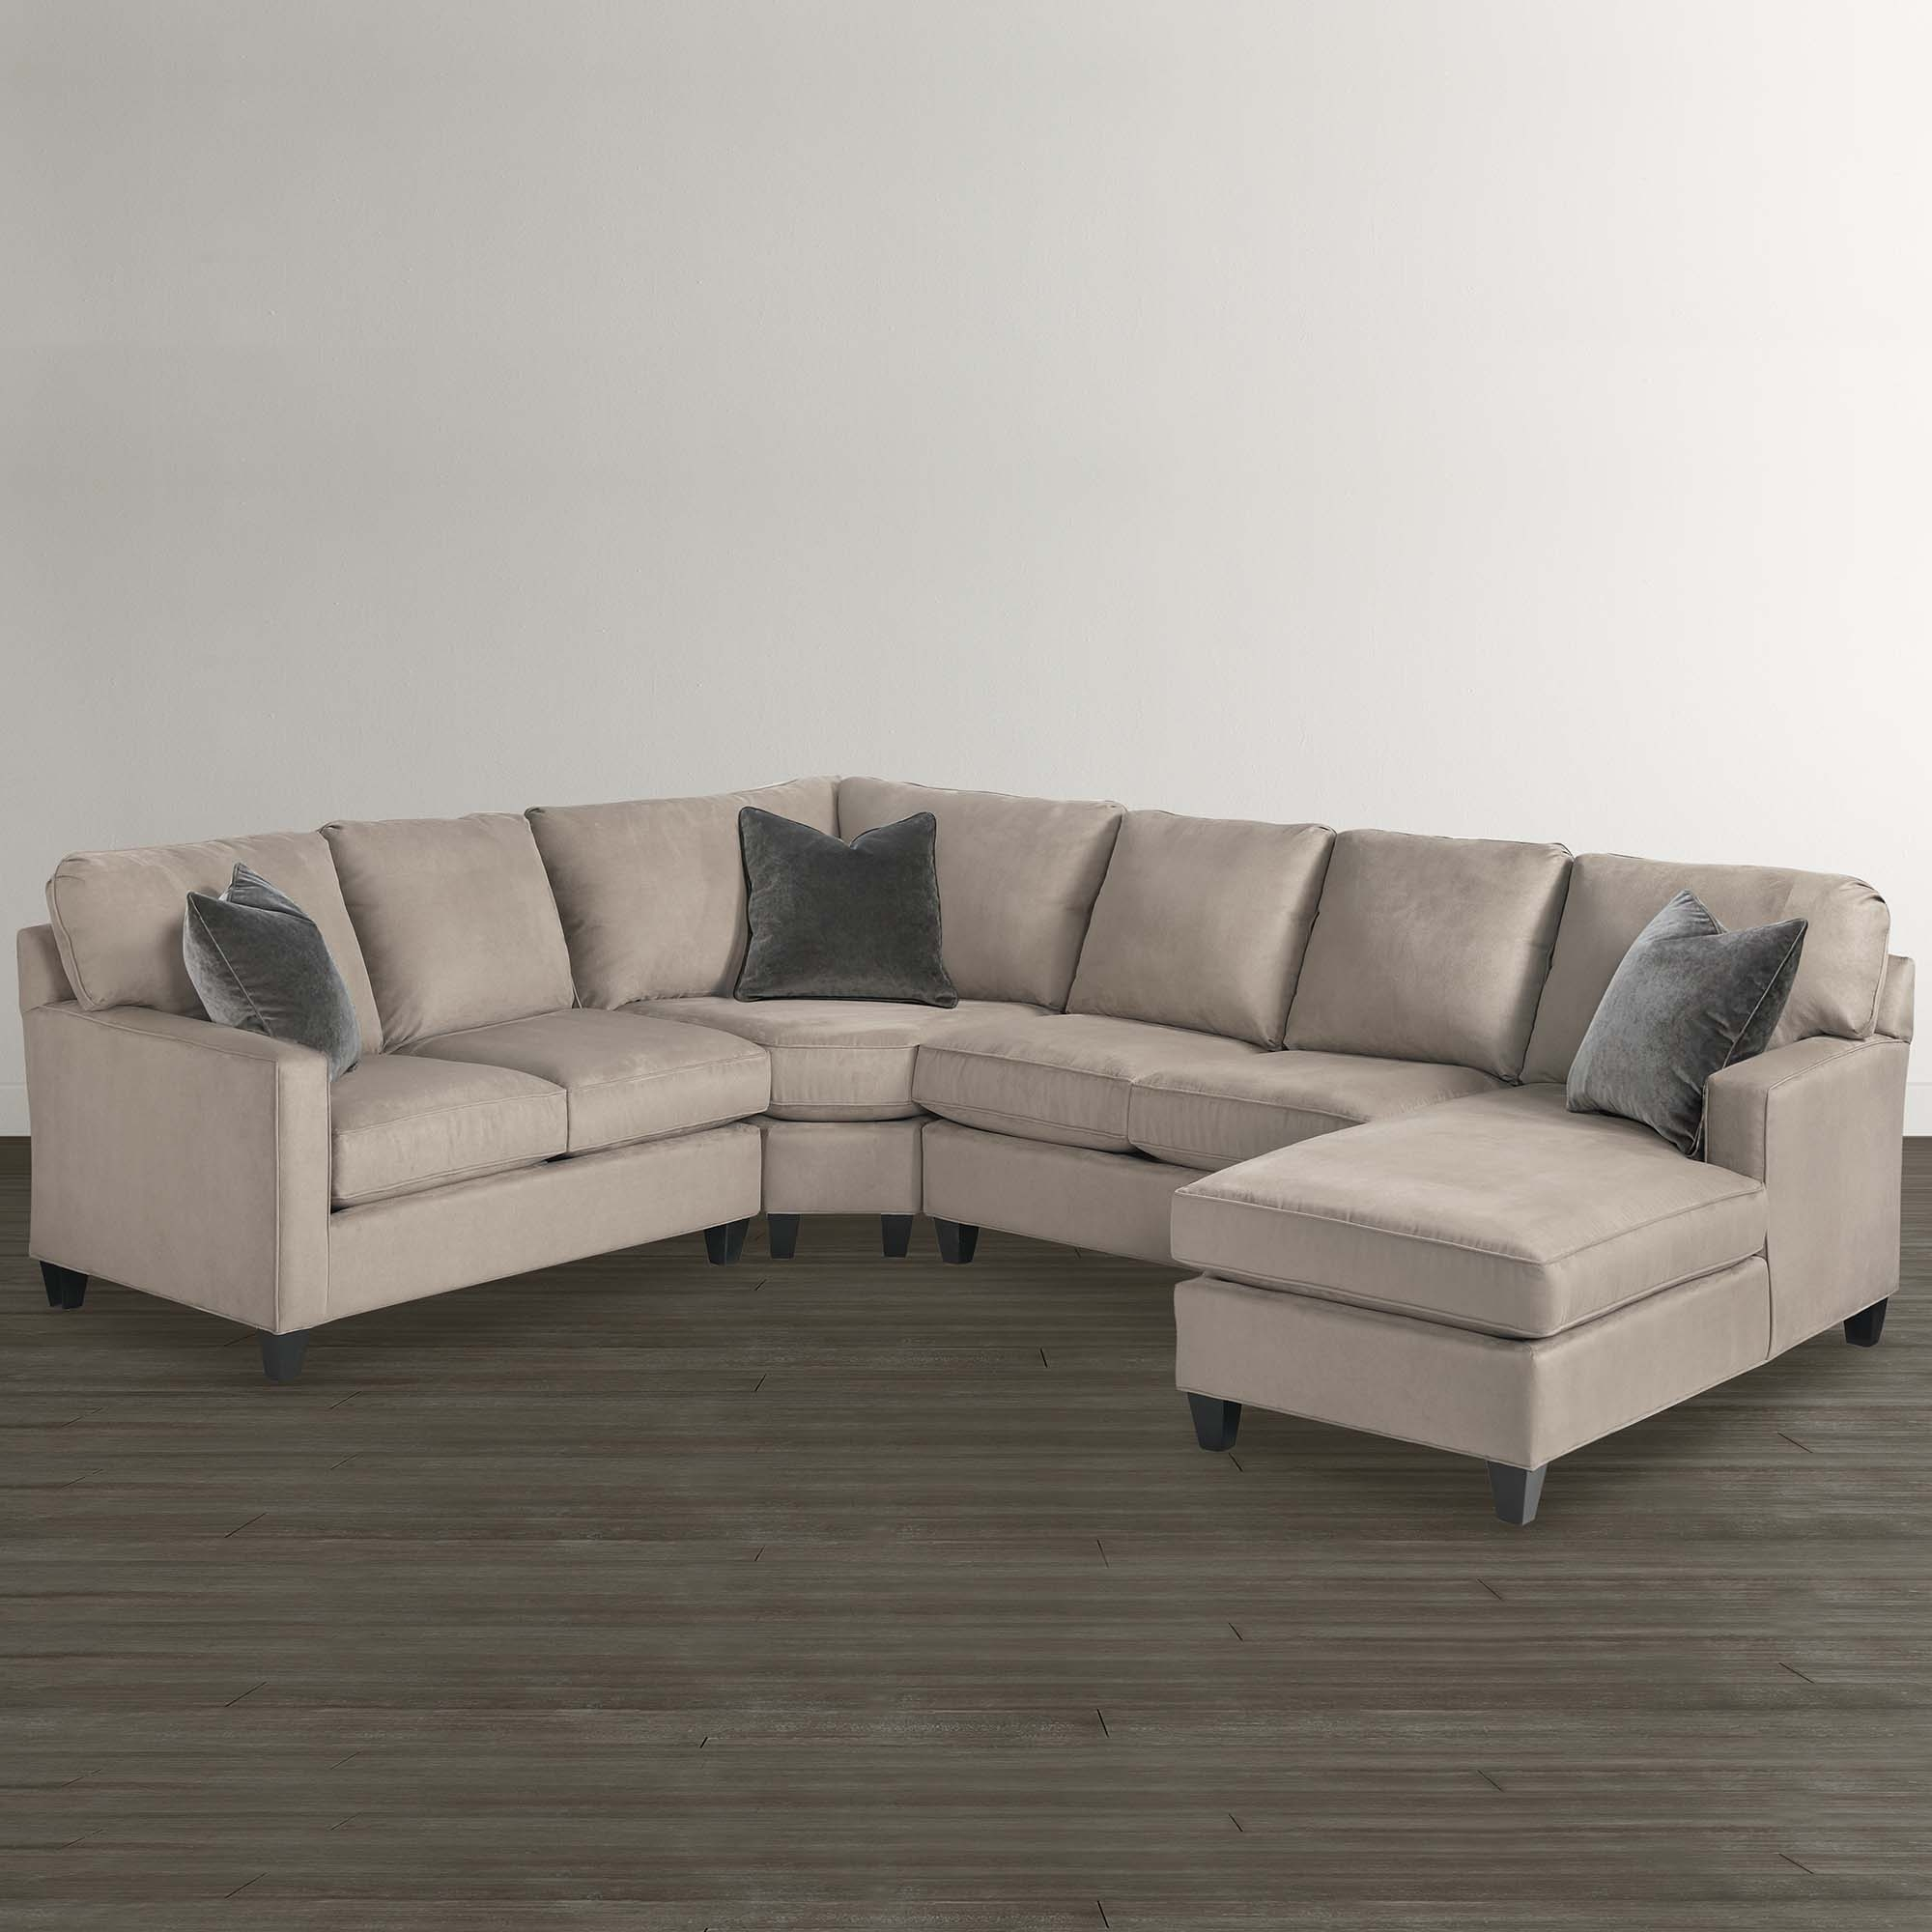 A Sectional Sofa Collection With Something For Everyone Throughout Angled Chaise Sofa (Image 3 of 15)